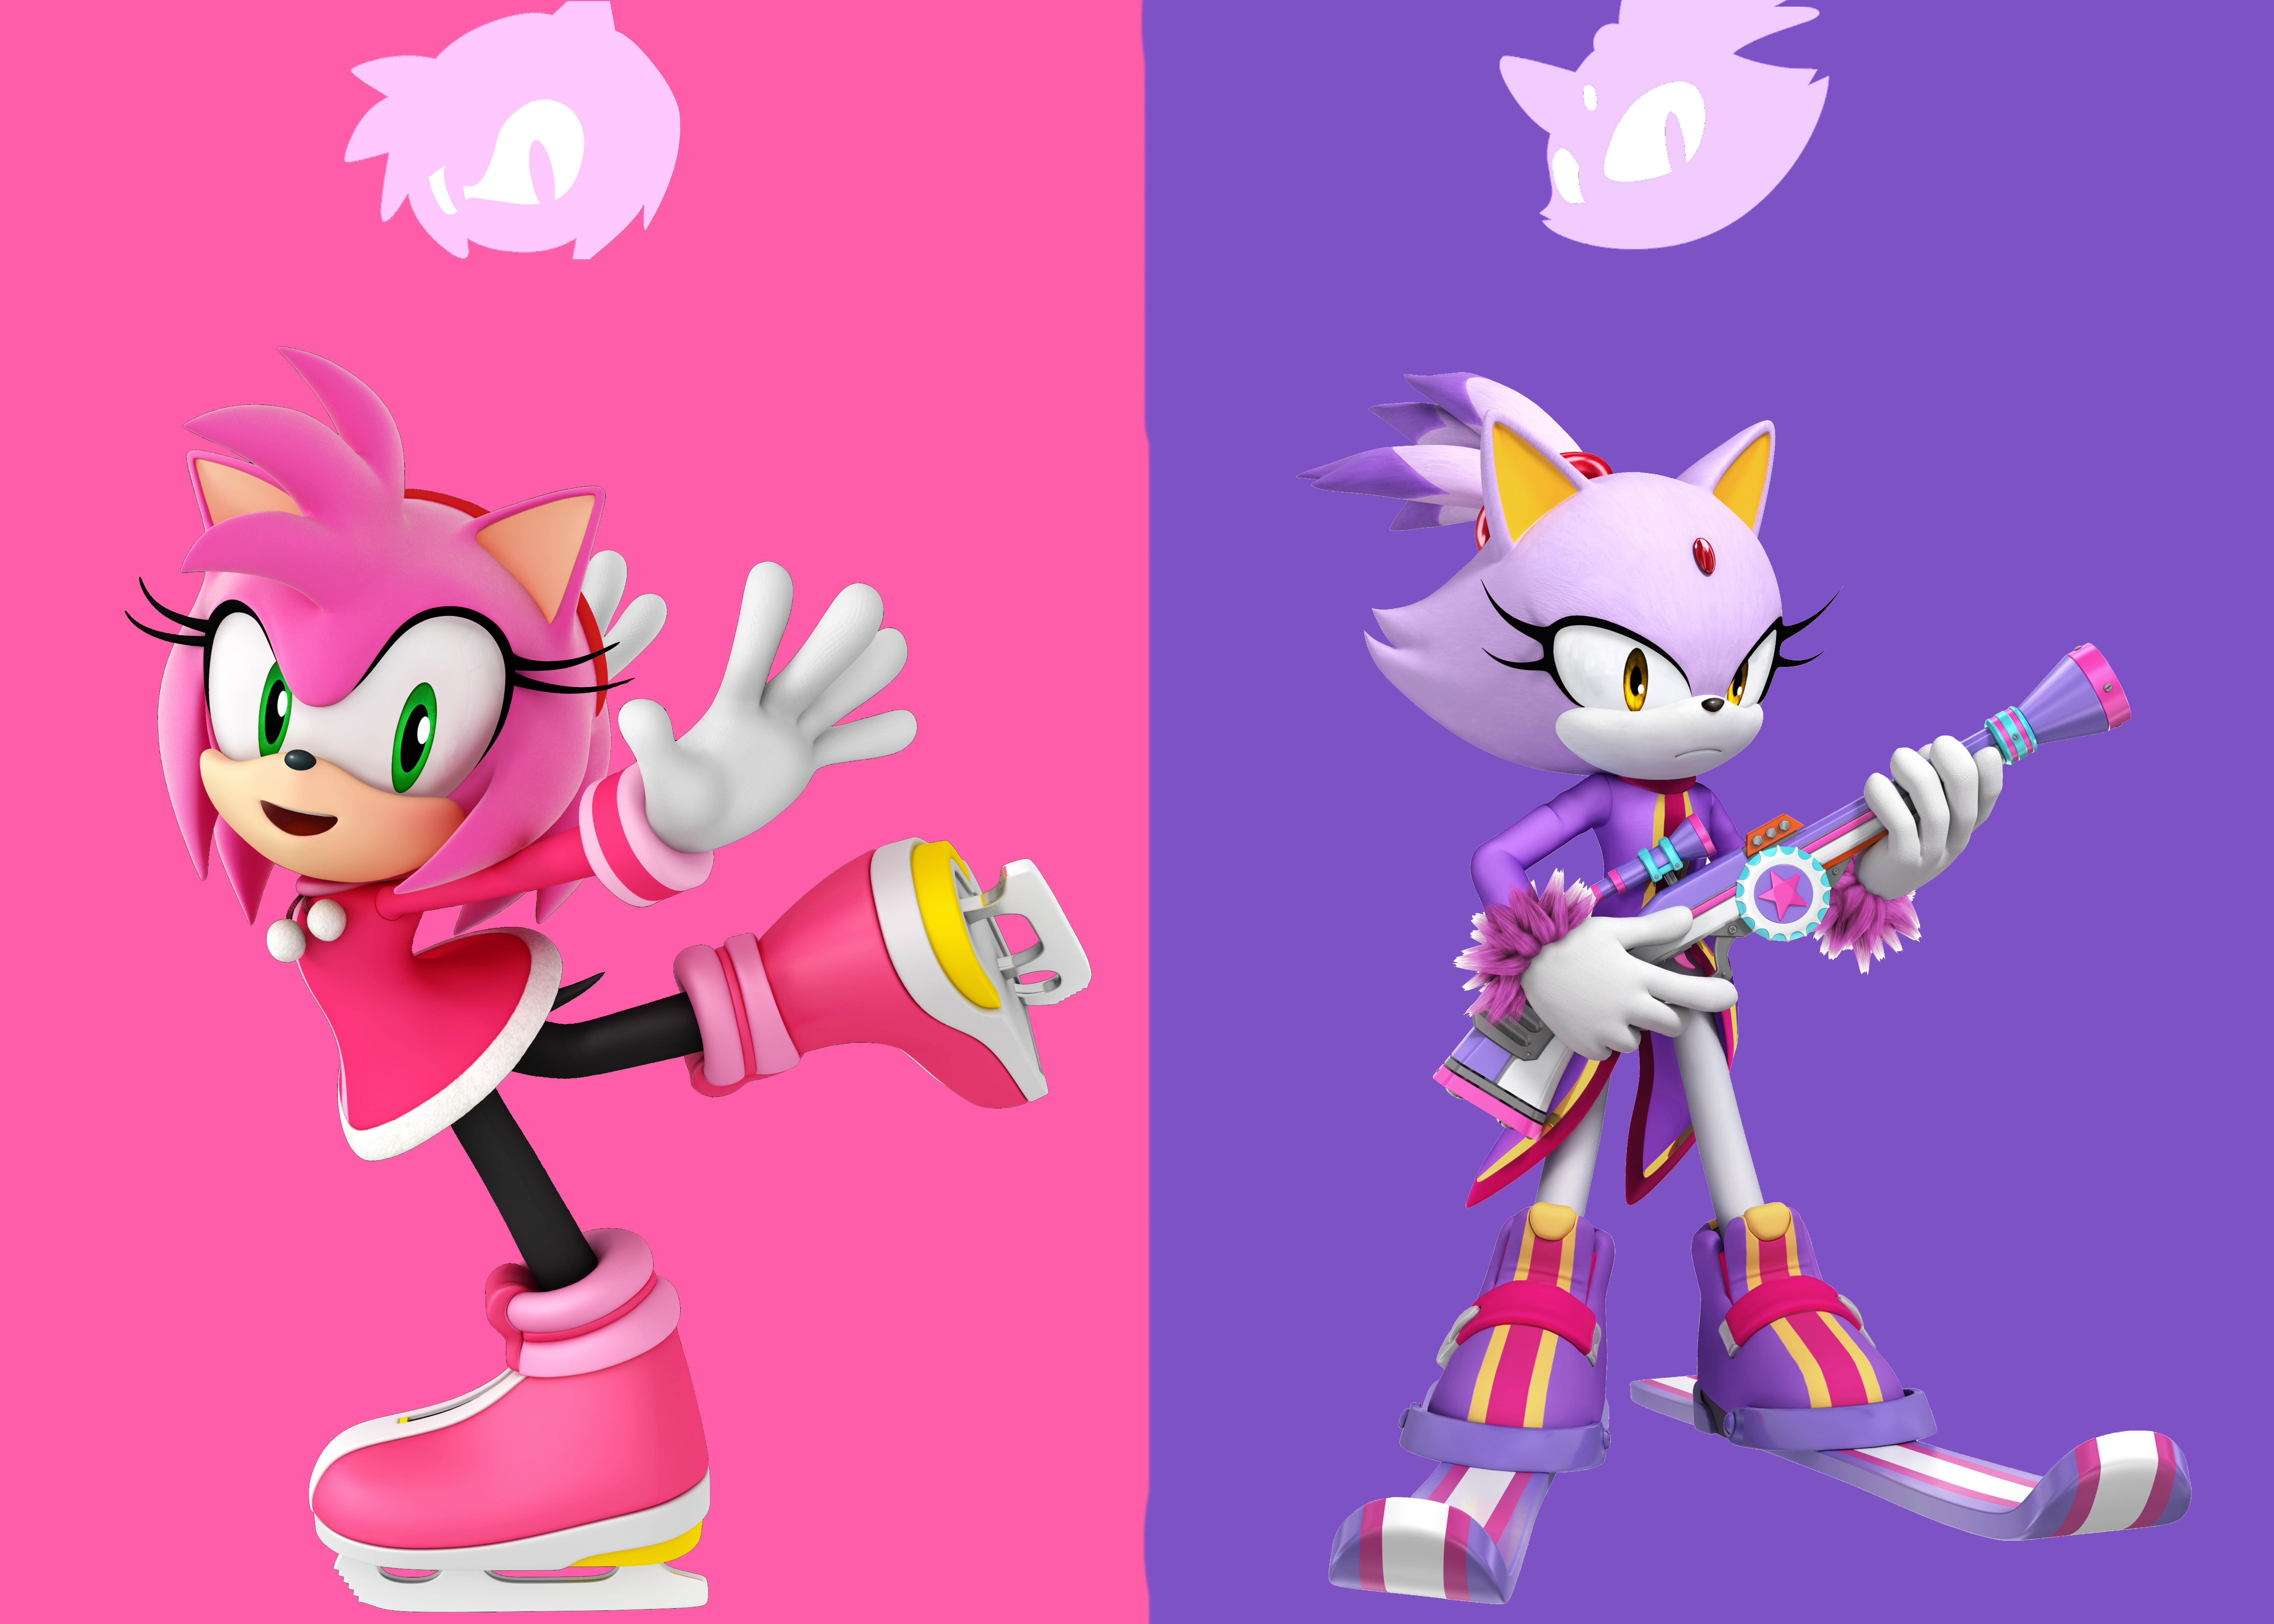 Amy and blaze in winter outfits by griddler6 on deviantart